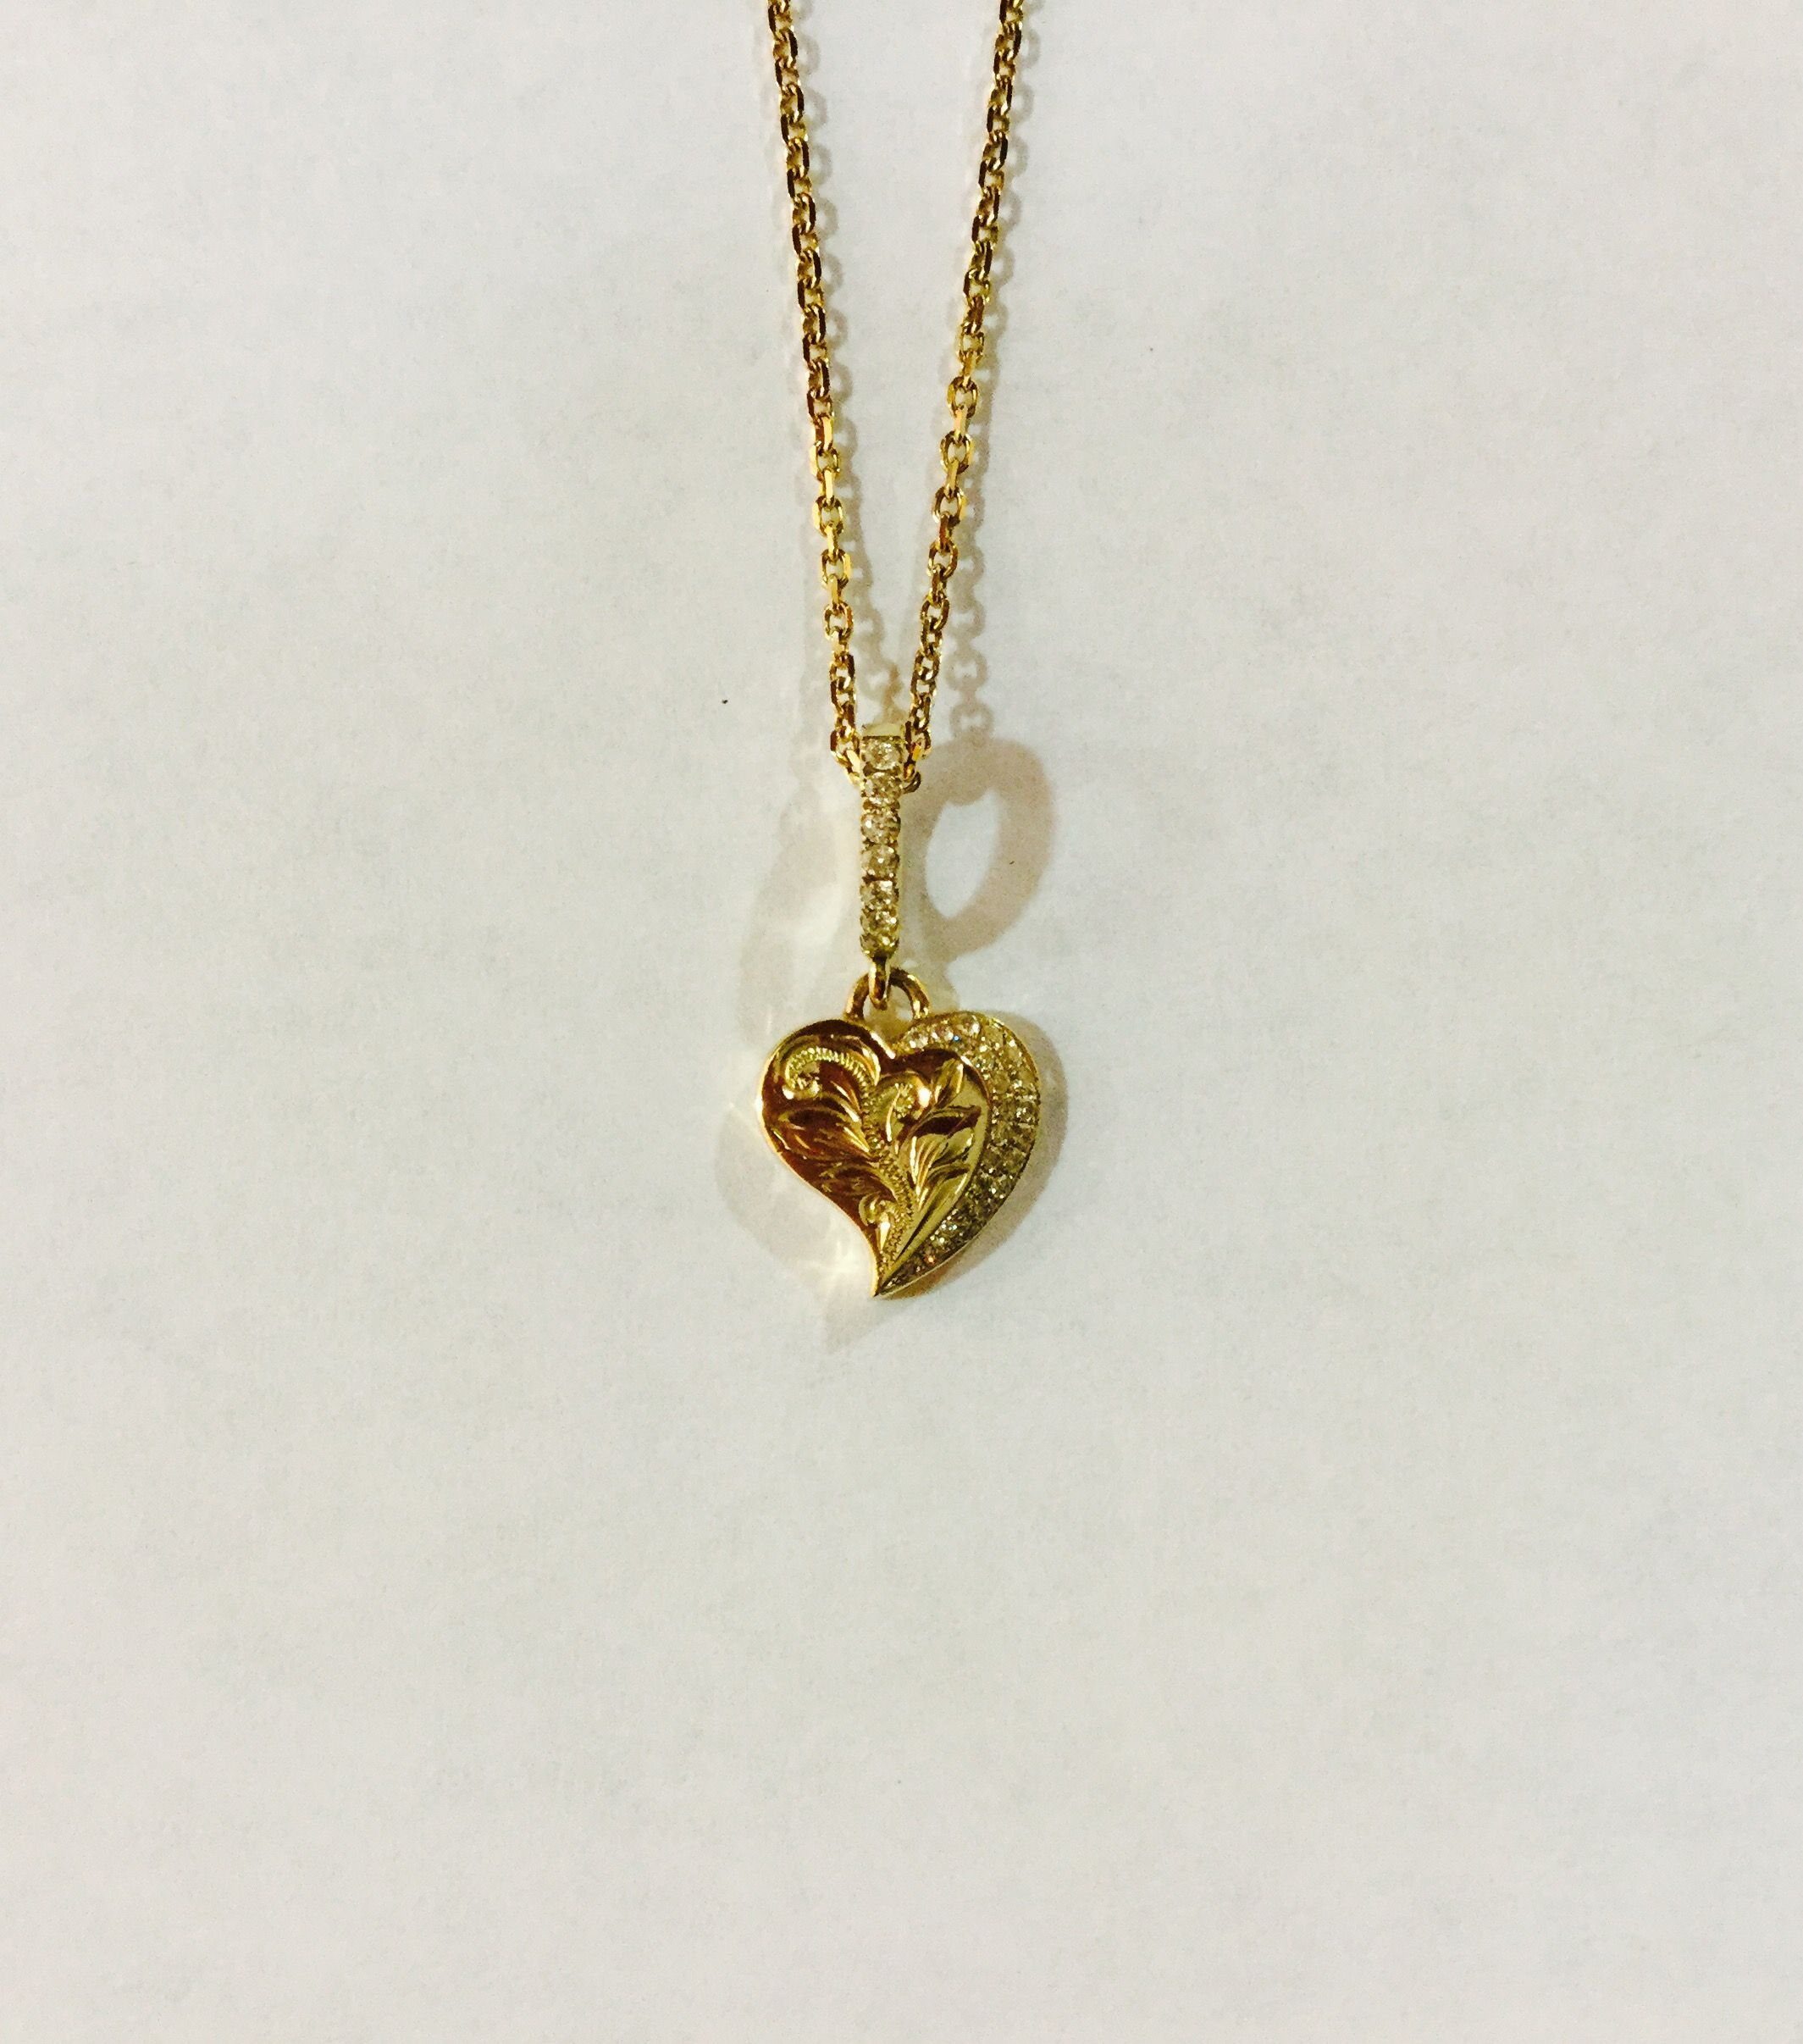 necklace jewelry louis vuitton pendant gold white